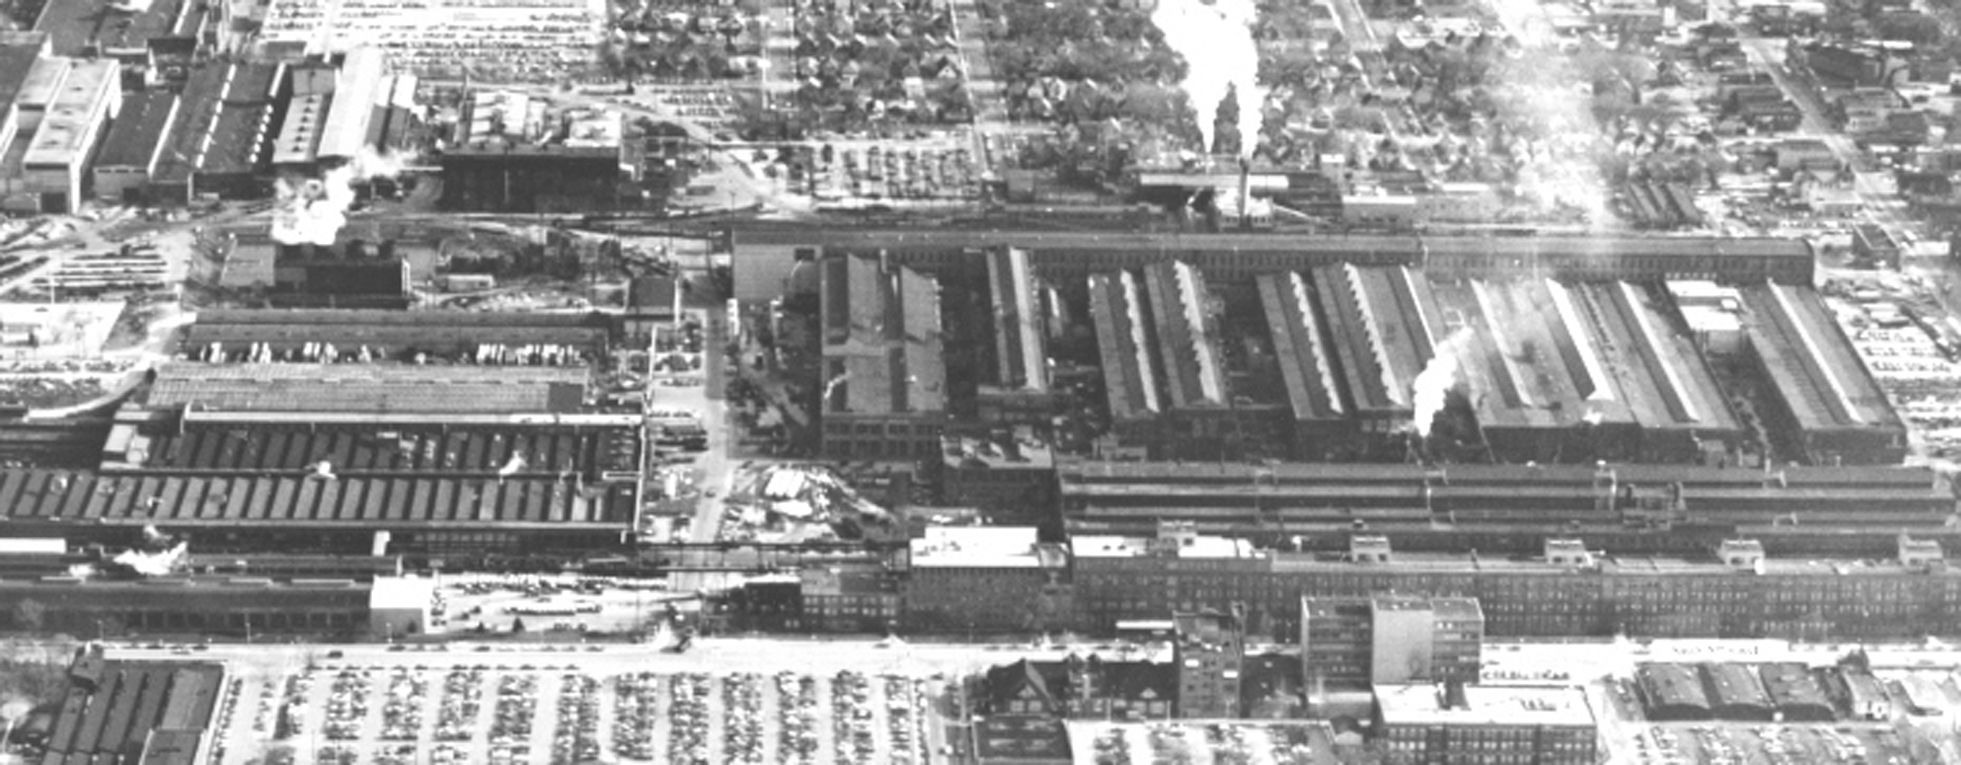 Downtown West Allis 1976 When Allis Chalmers Was Going Strong Definitly A Massive Operation West Allis West Allis Wisconsin Historical View